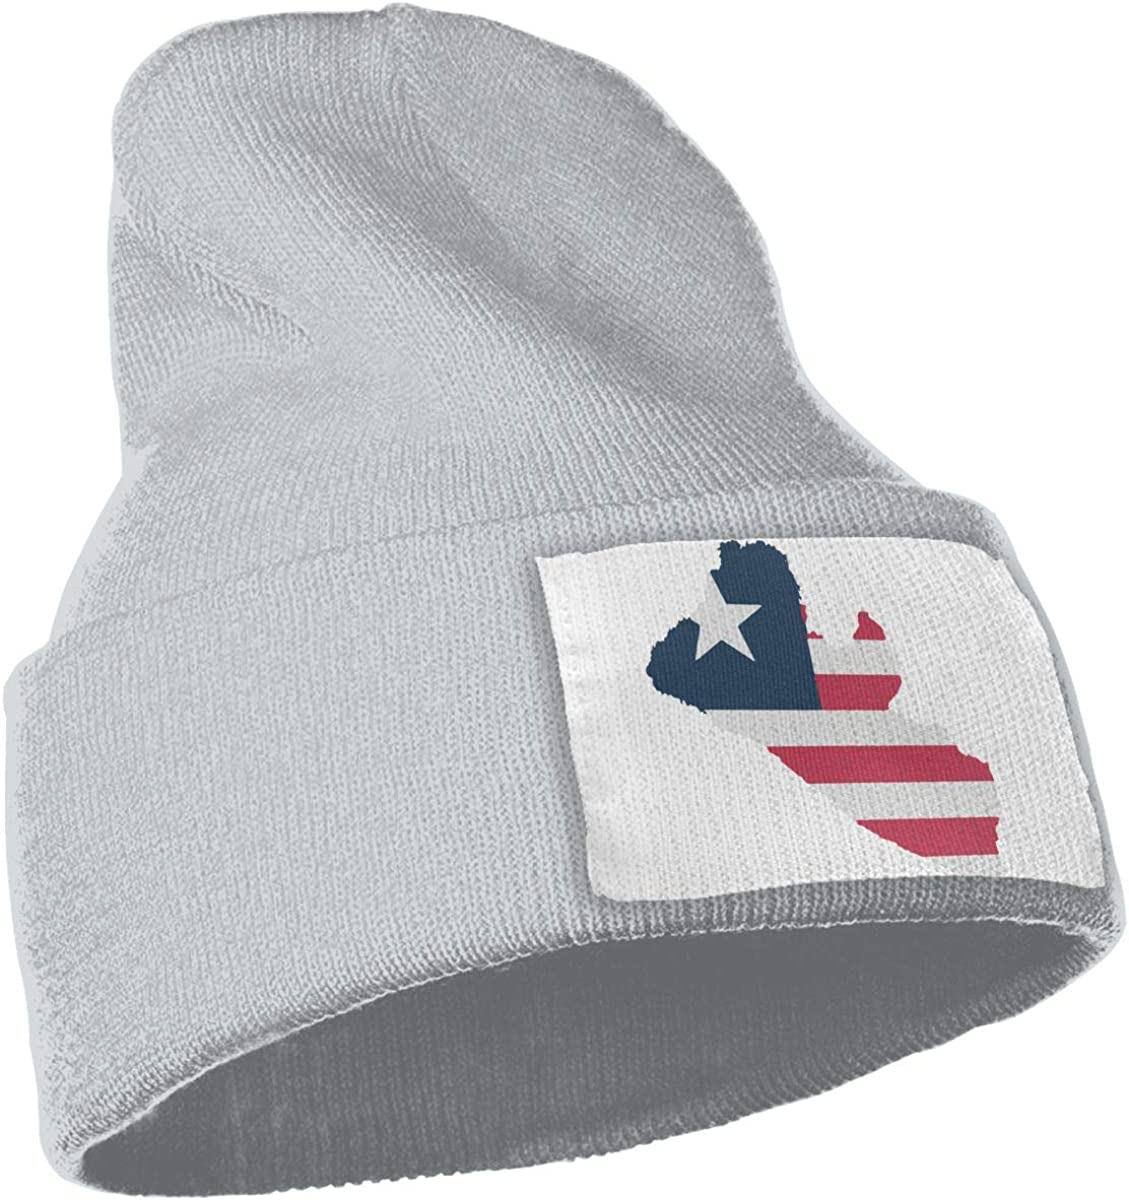 TAOMAP89 Liberia Flag Map Women and Men Skull Caps Winter Warm Stretchy Knitting Beanie Hats